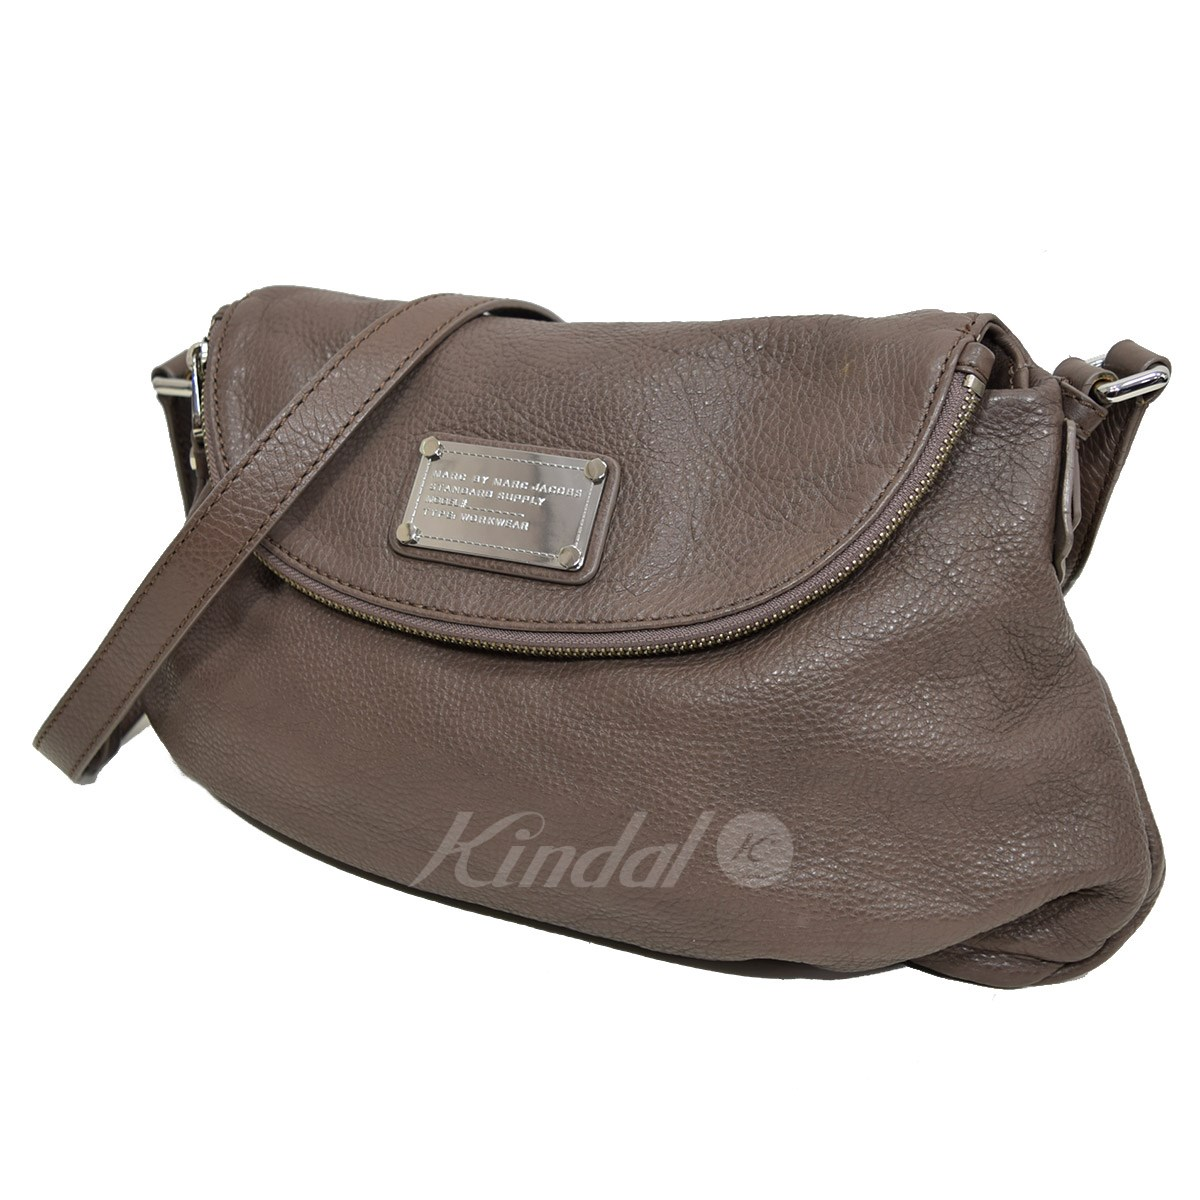 8edd59661052 MARC by MARC JACOBS CLASSIC Q NATASHA leather shoulder bag brown size  -  MARC BY MARC JACOBS